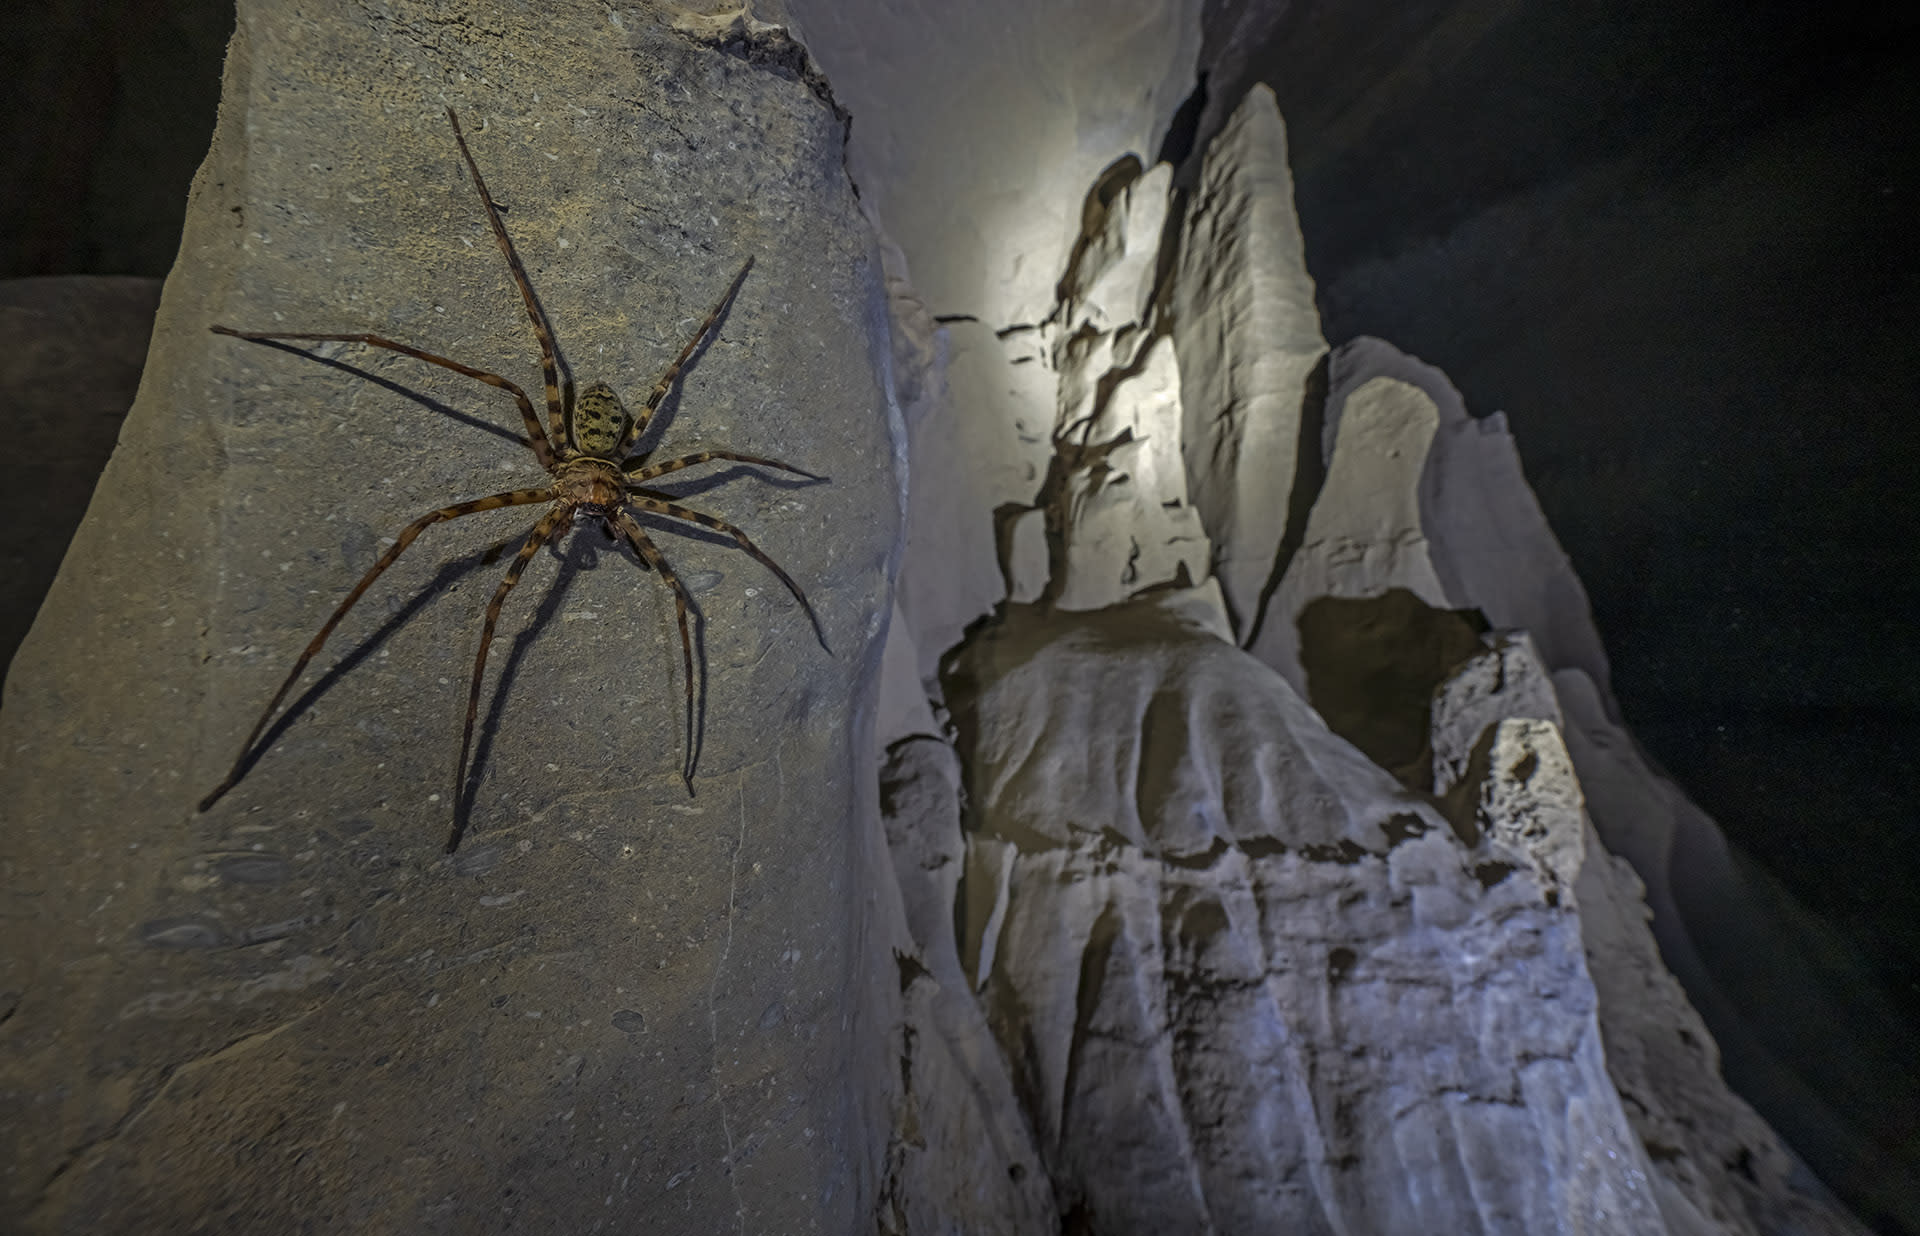 Giant hunstman spider in a cave near Lumsnang in Meghalaya